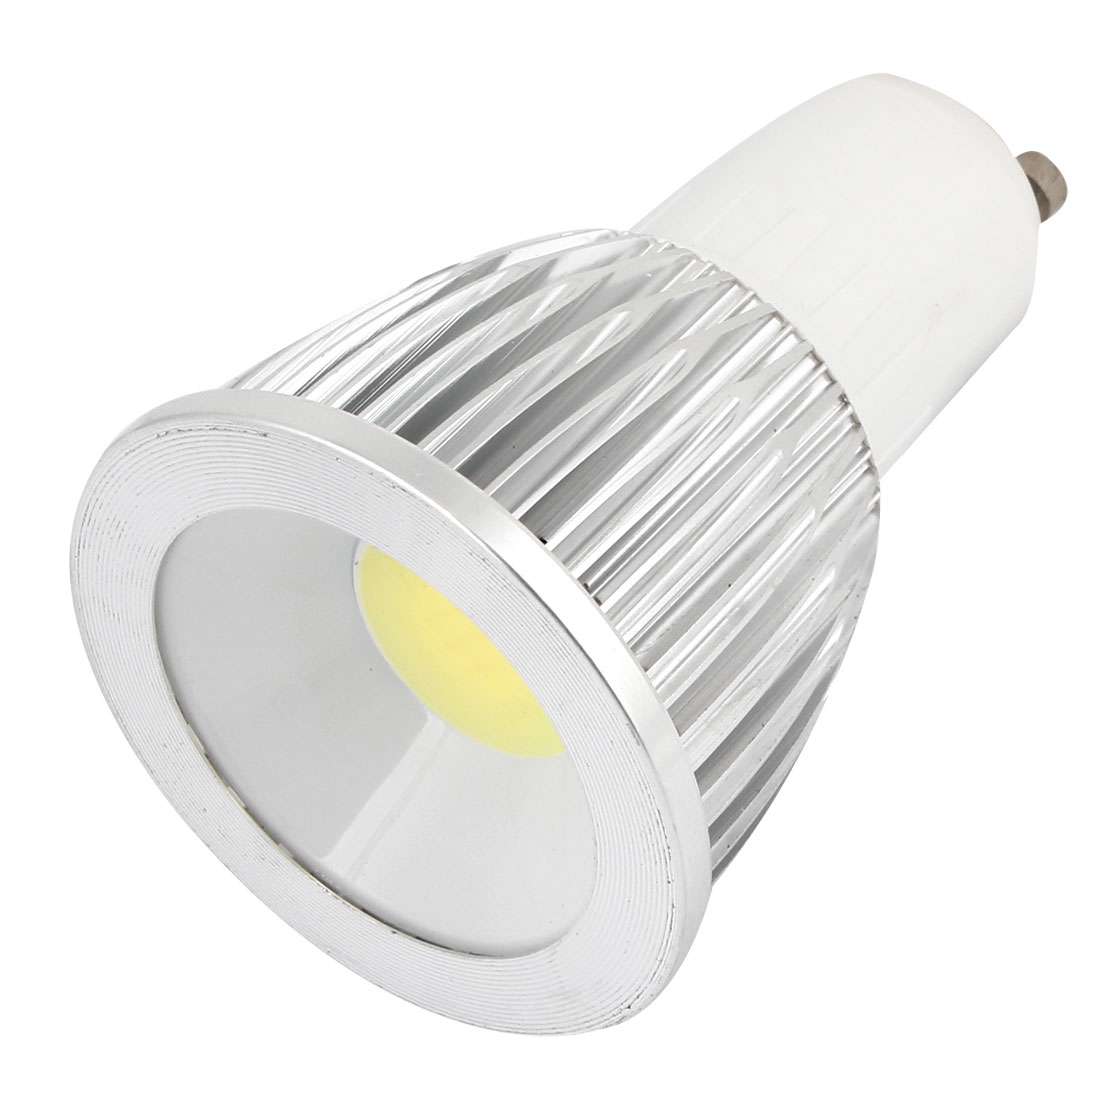 AC 85-265V 9W 600-650LM GU10 Dimmable Cool White Light COB LED Downlight Spotlight